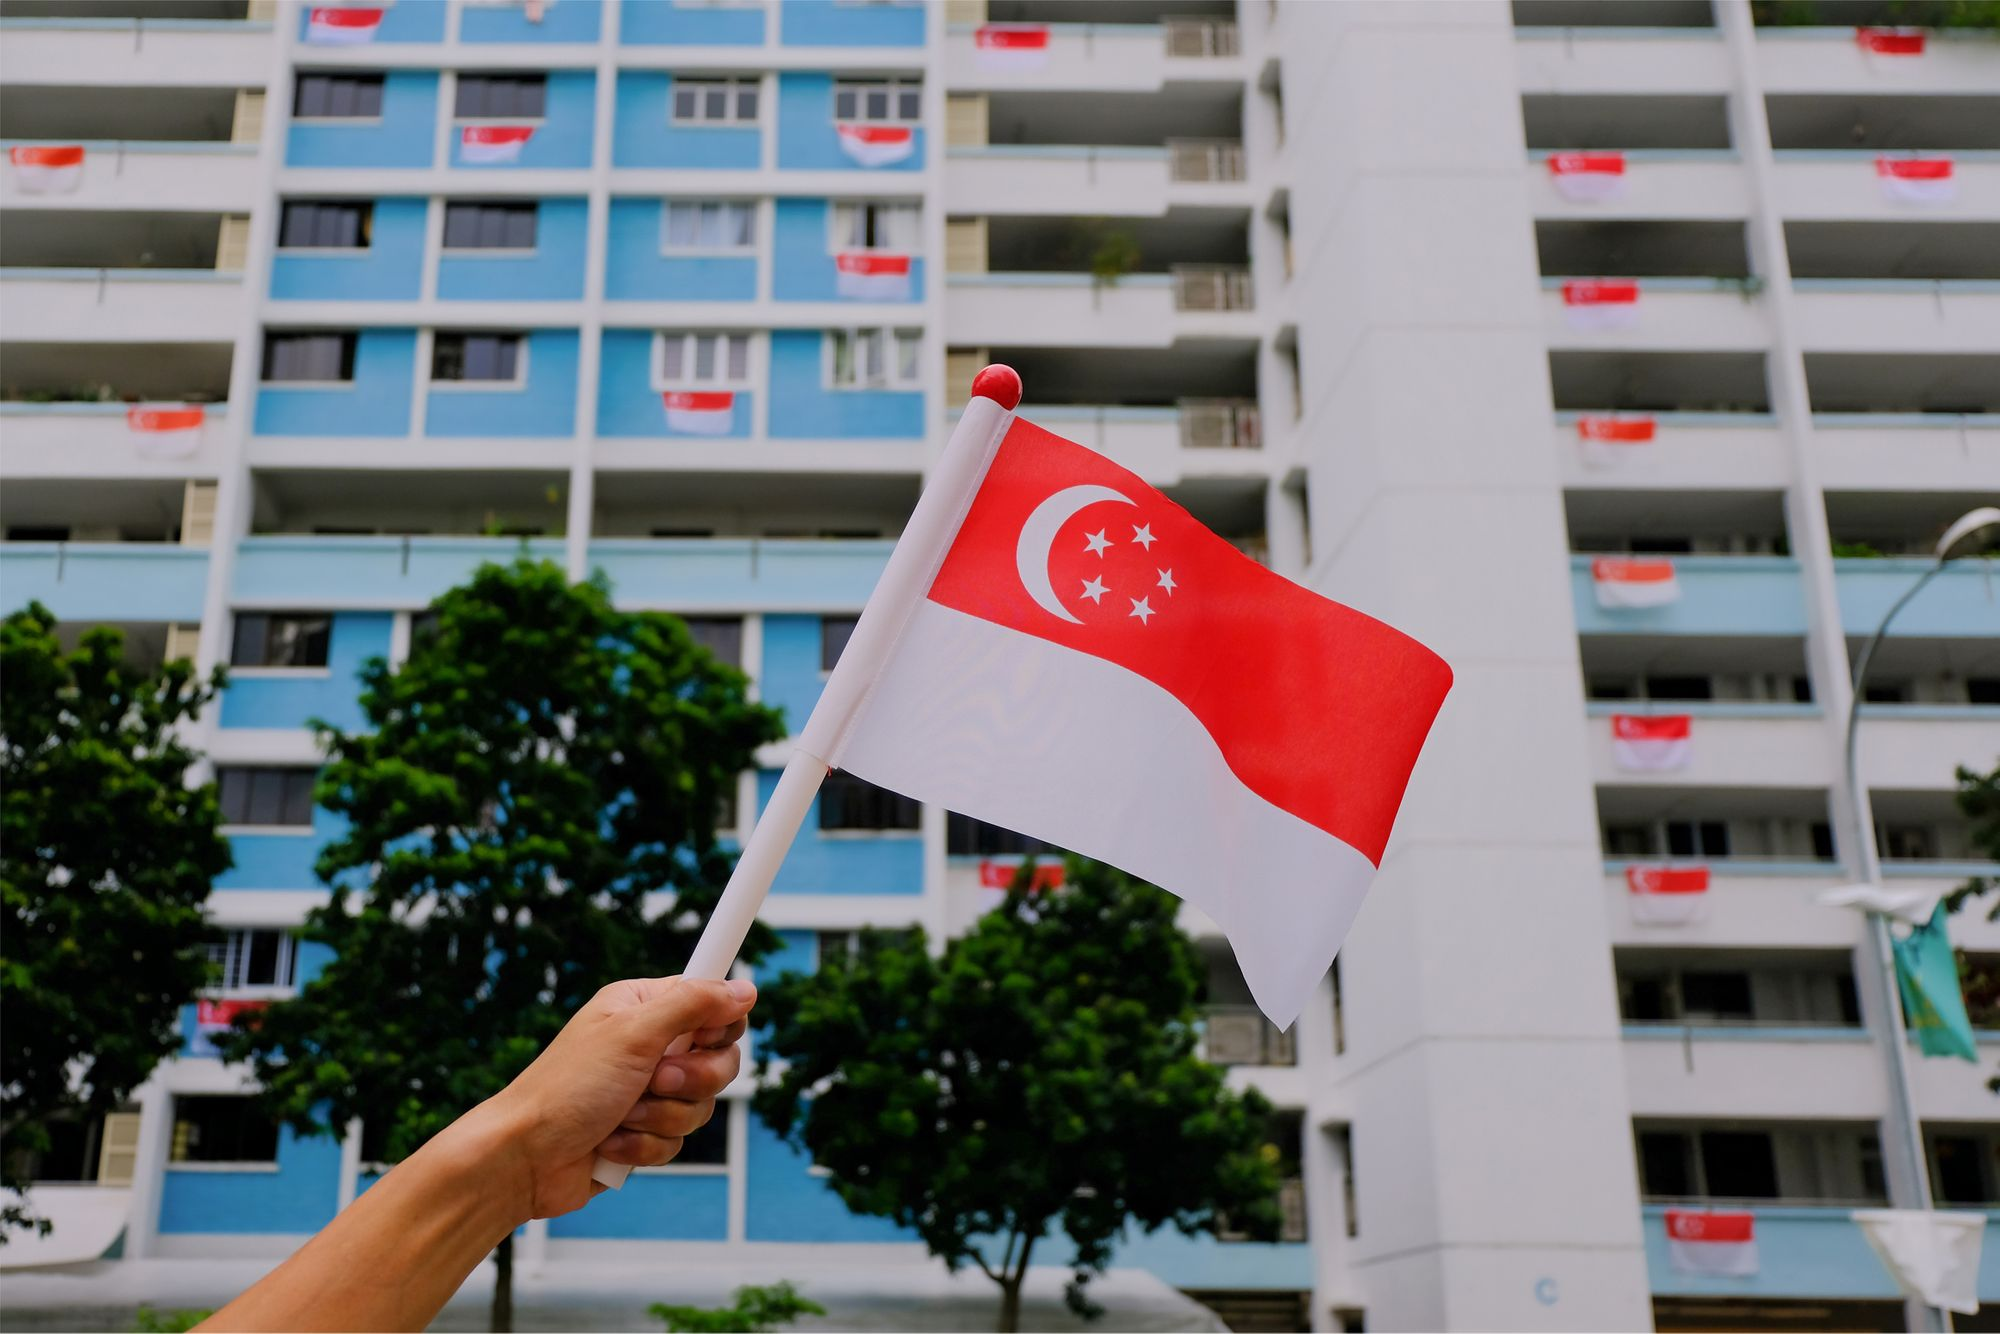 National Day 2020: Things to do over the long weekend